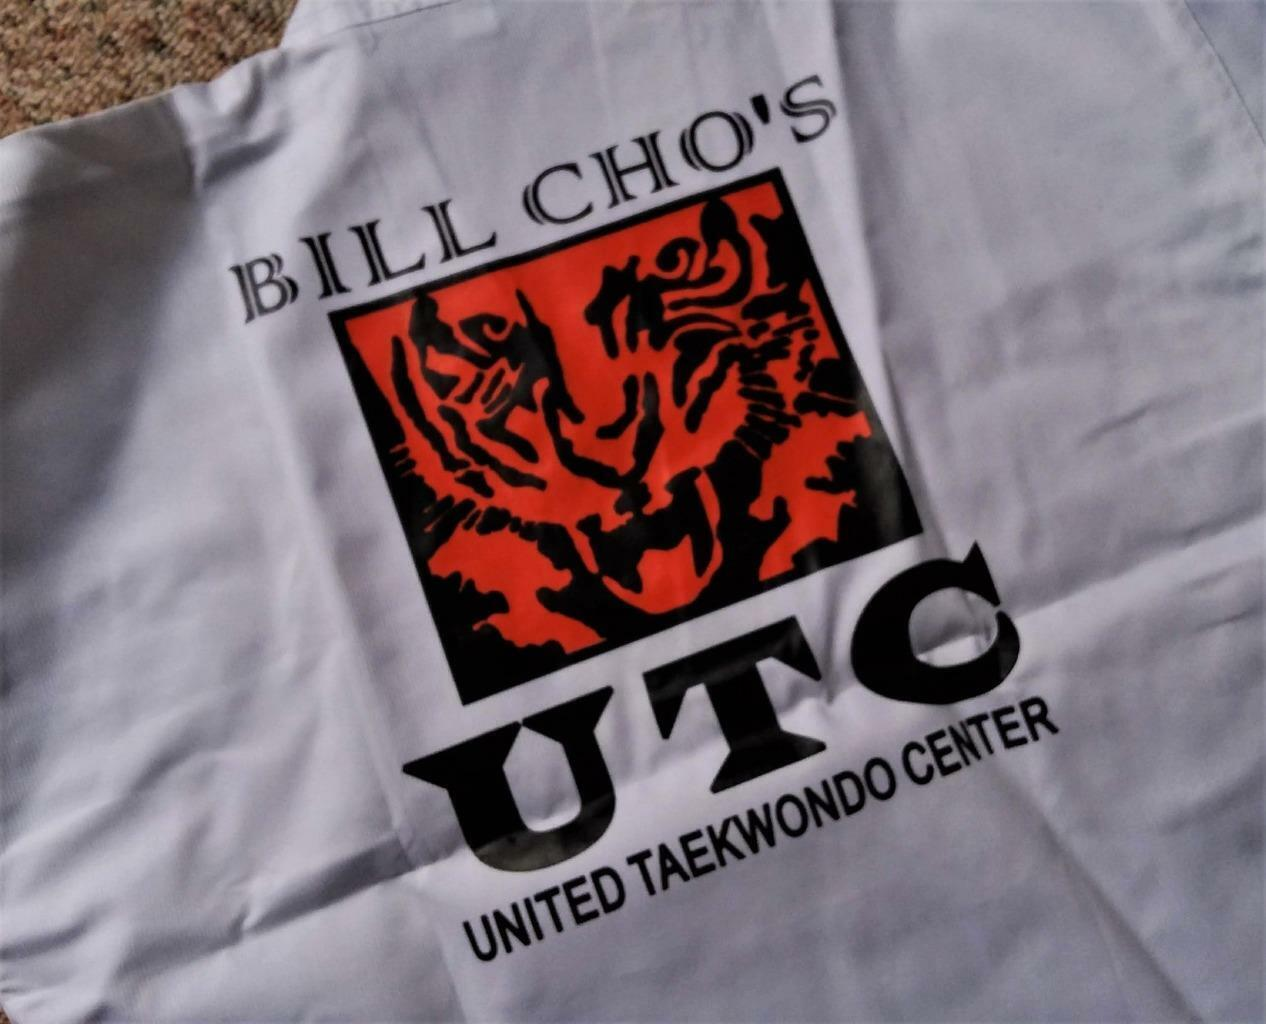 Size 4 Bill Cho's UTC Martial  Arts Karate United TaeKwonDo Center Uniform White  fast shipping and best service